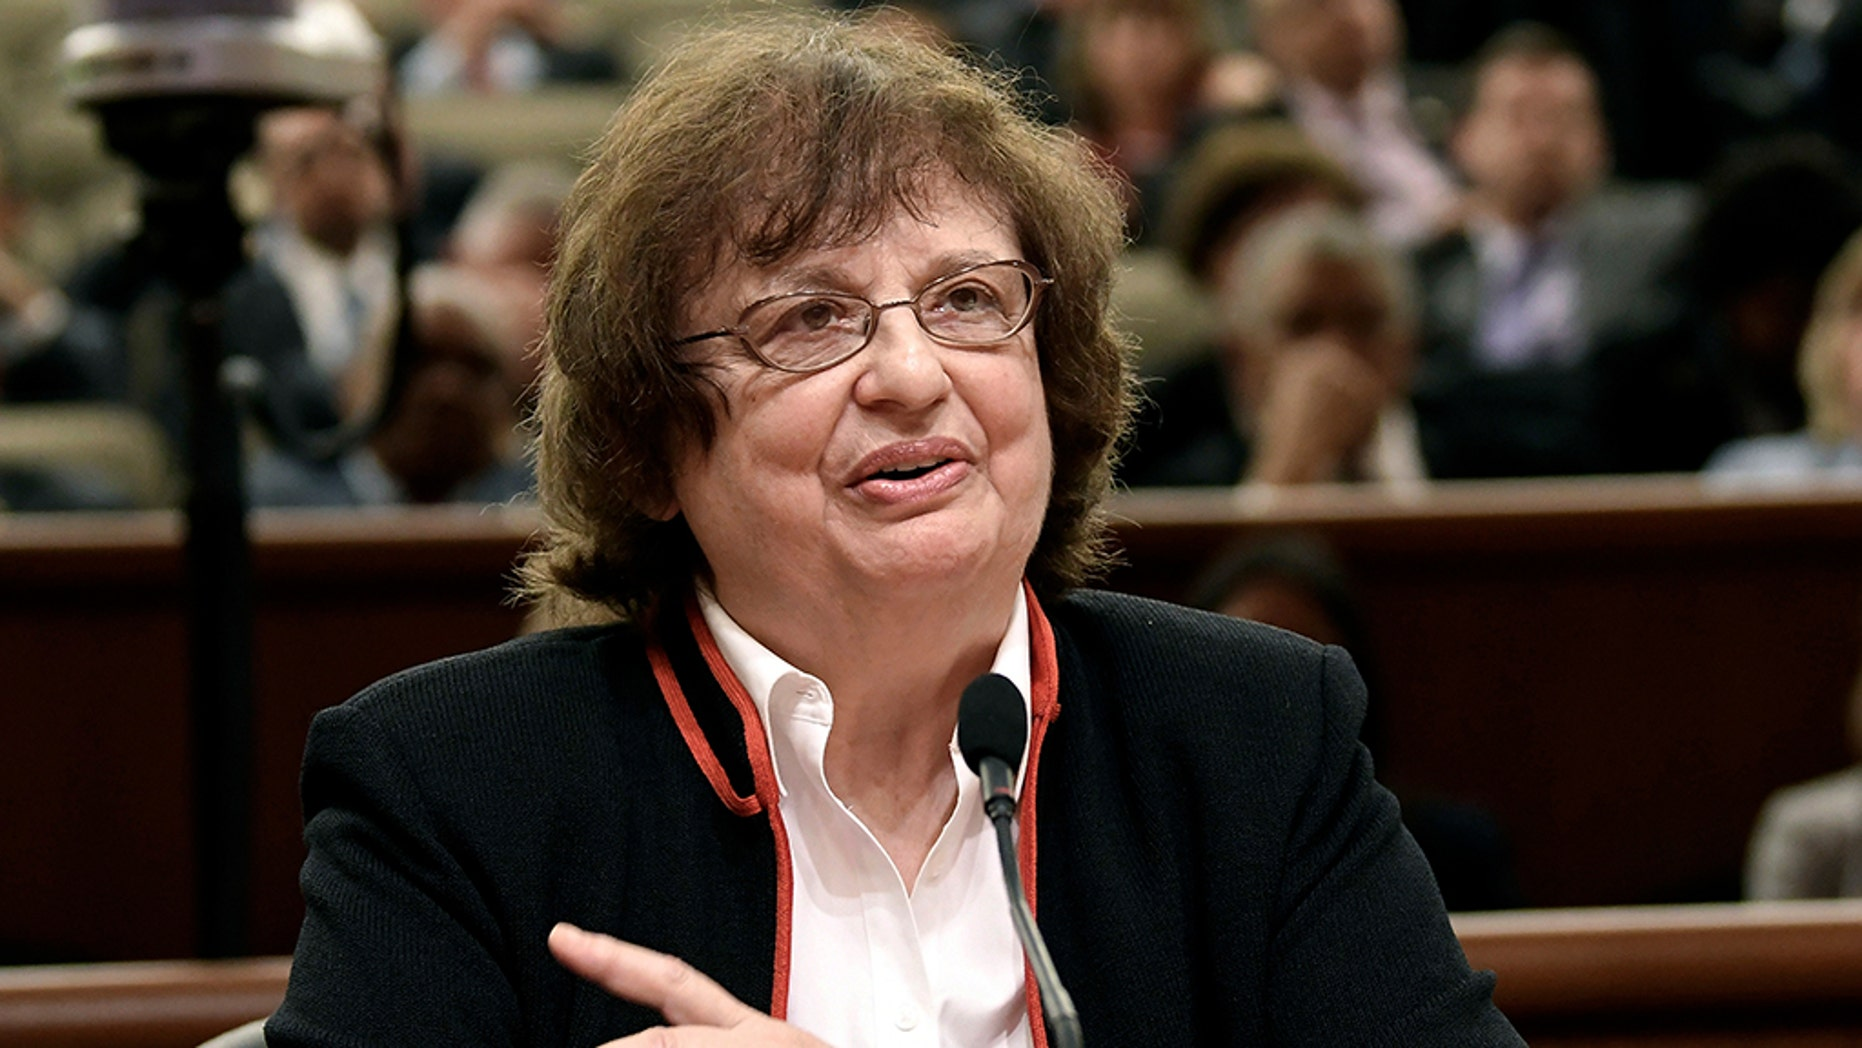 Six New York hospitals have agreed to repay sexual assault victims who were illegally charged as much as $3,000 for rape exams that should have been billed to the state or their insurers, Attorney General Barbara Underwood said Thursday. (AP Photo/Hans Pennink)